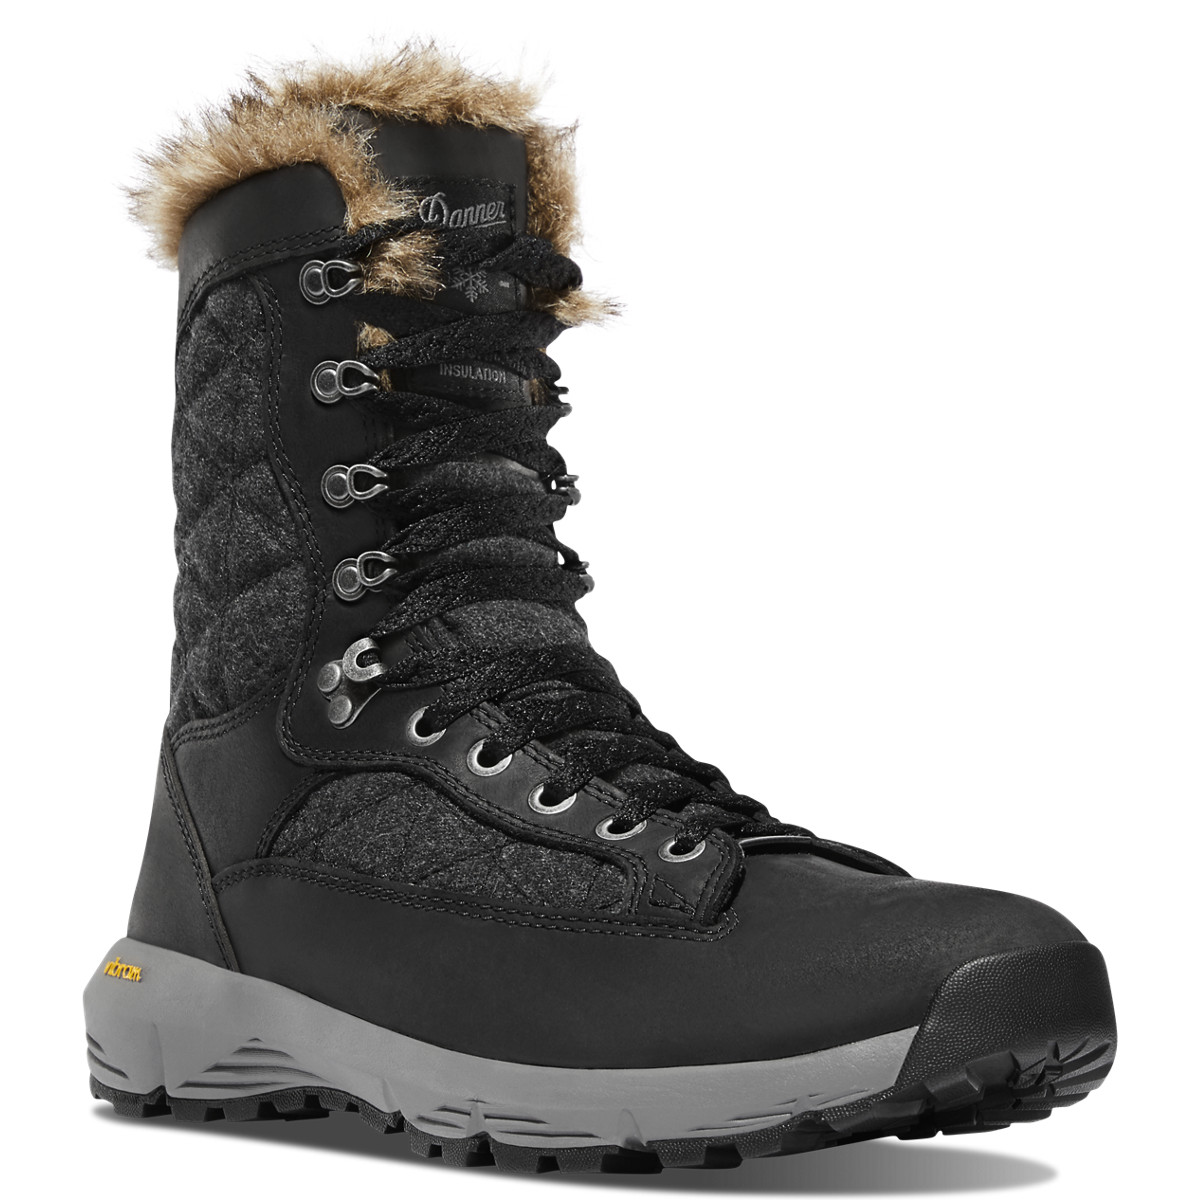 Danner Raptor 650 Weatherized Boot Review The Coloradist